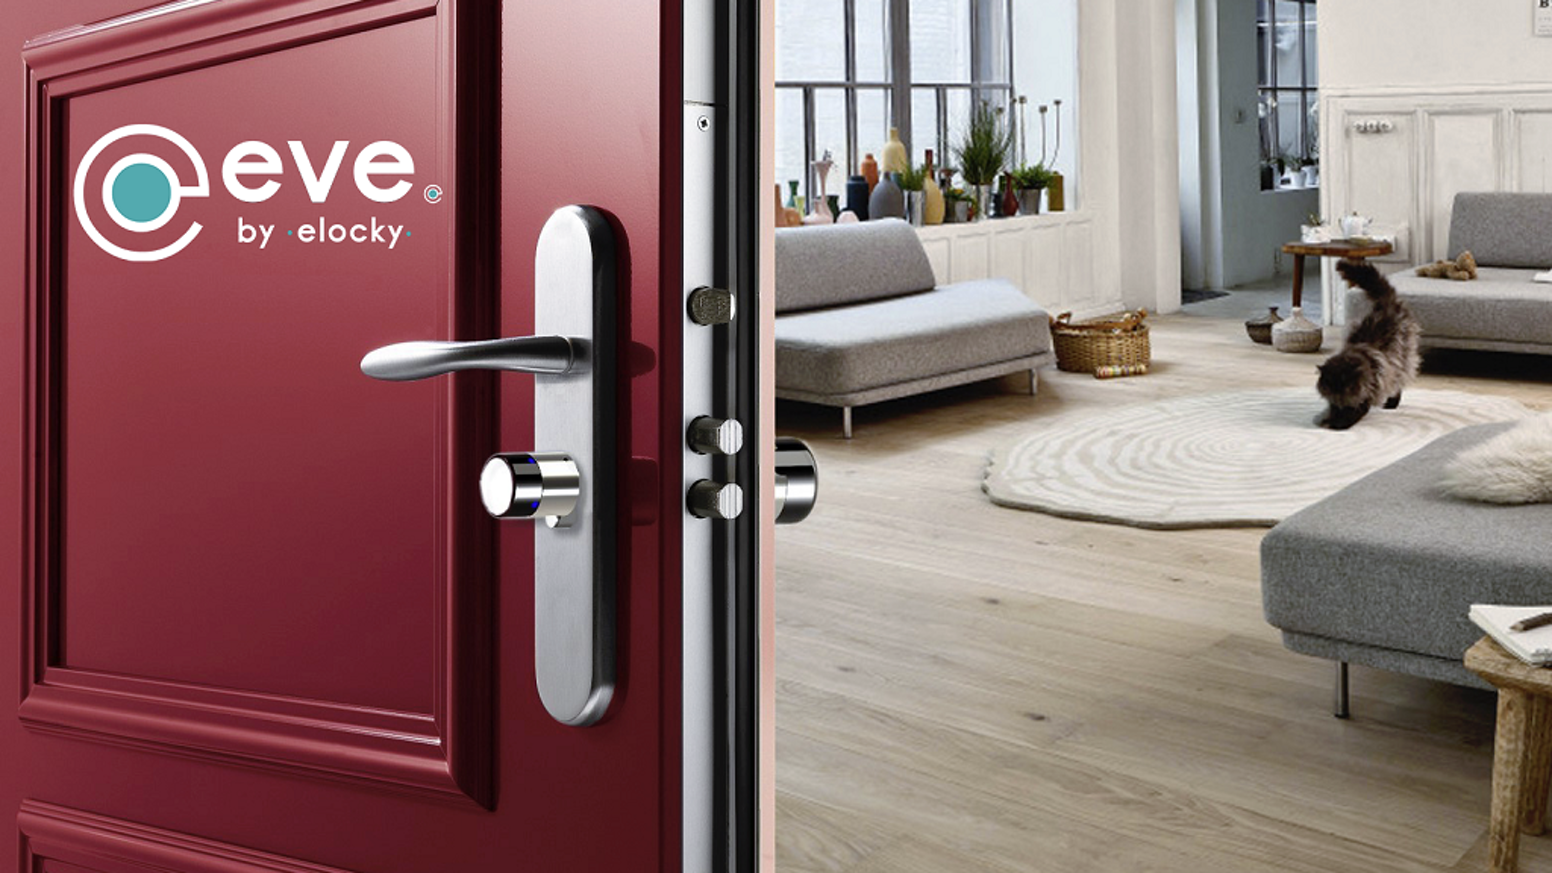 Adoptez eVe, partagez vos clés et surveillez votre maison | Adopt eVe, easily share your keys and watch over your house !